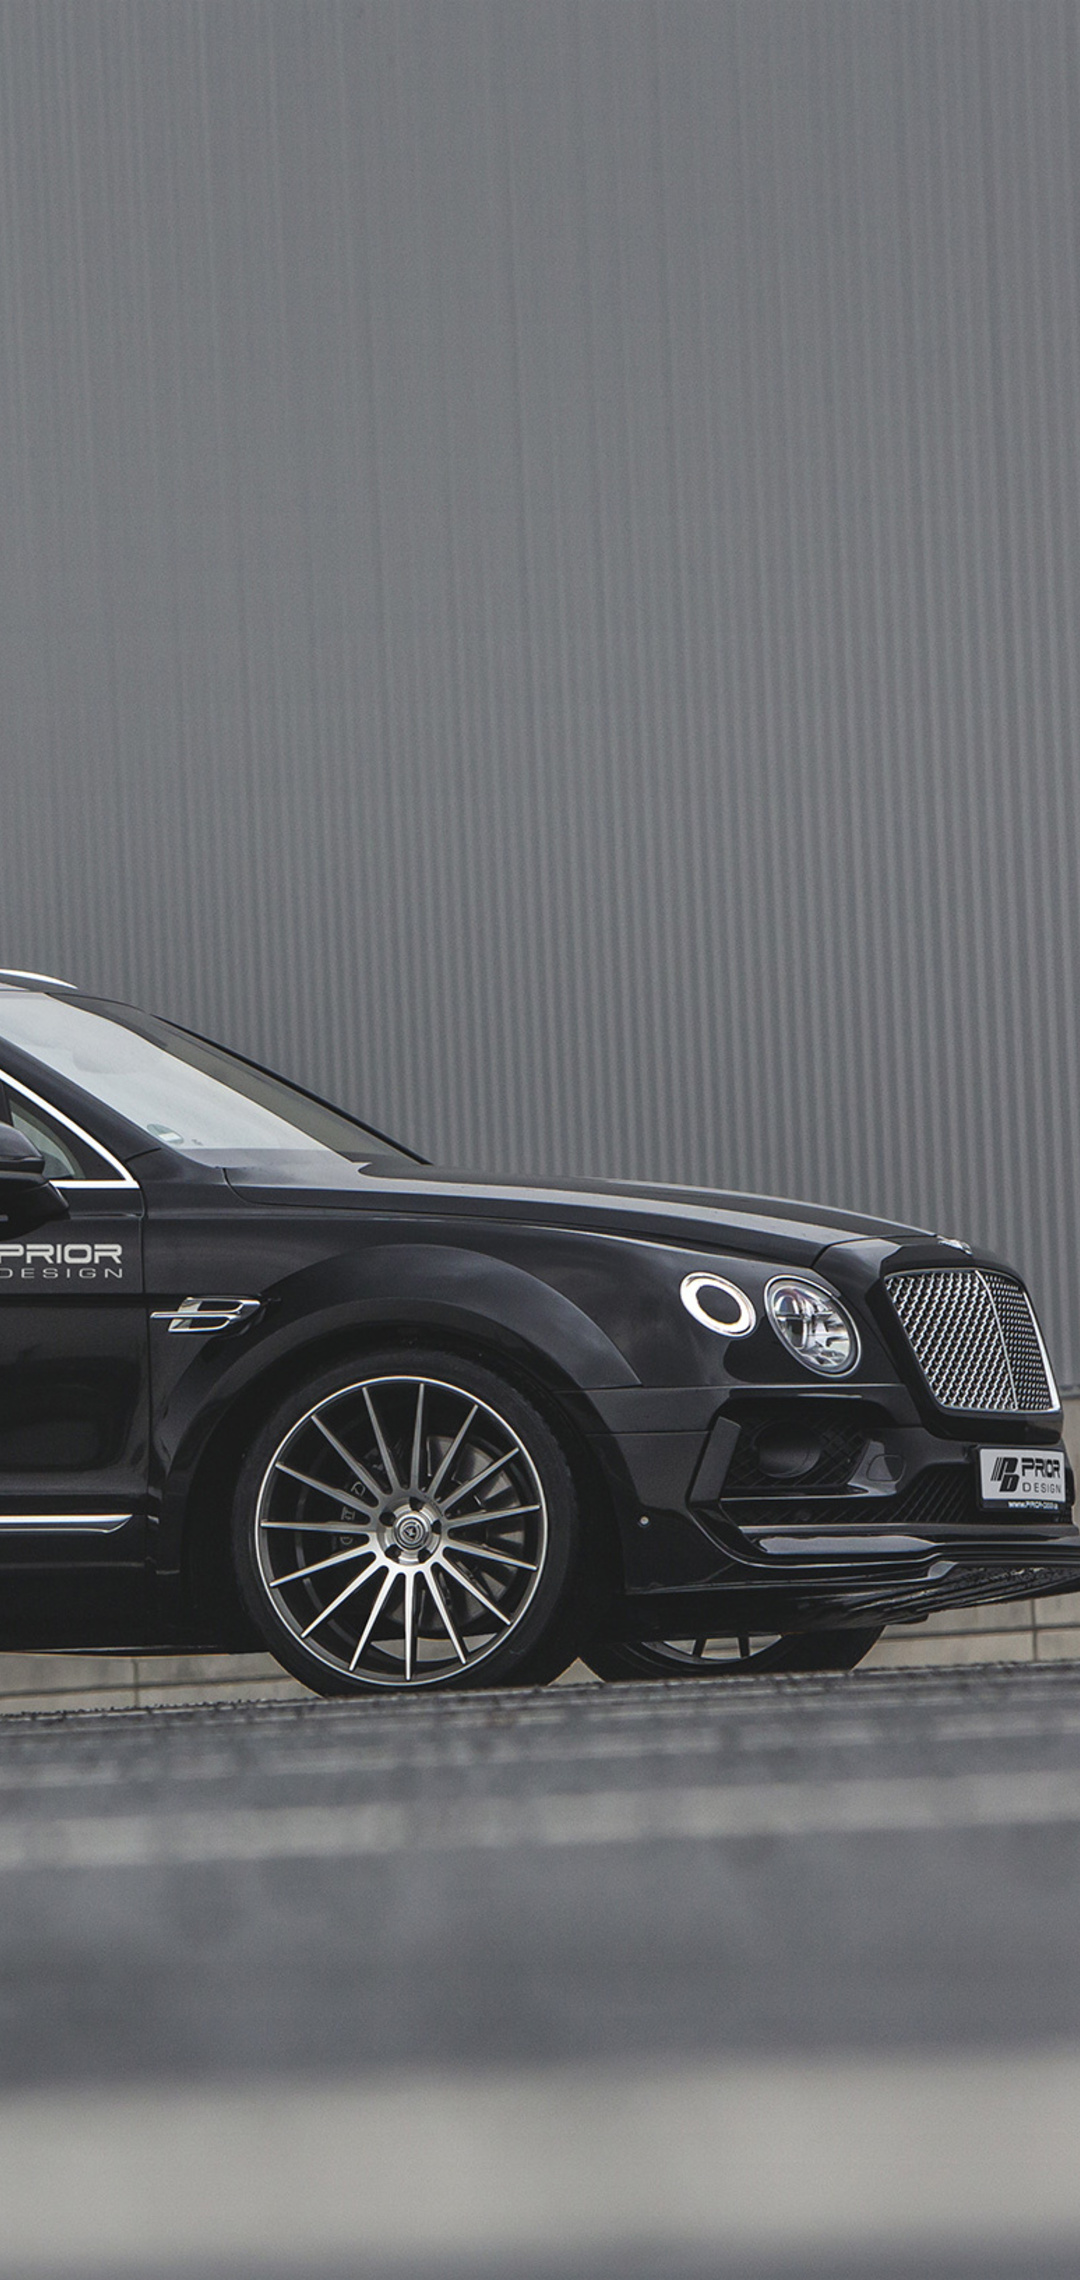 prior-design-bentley-bentayga-side-view-fe.jpg